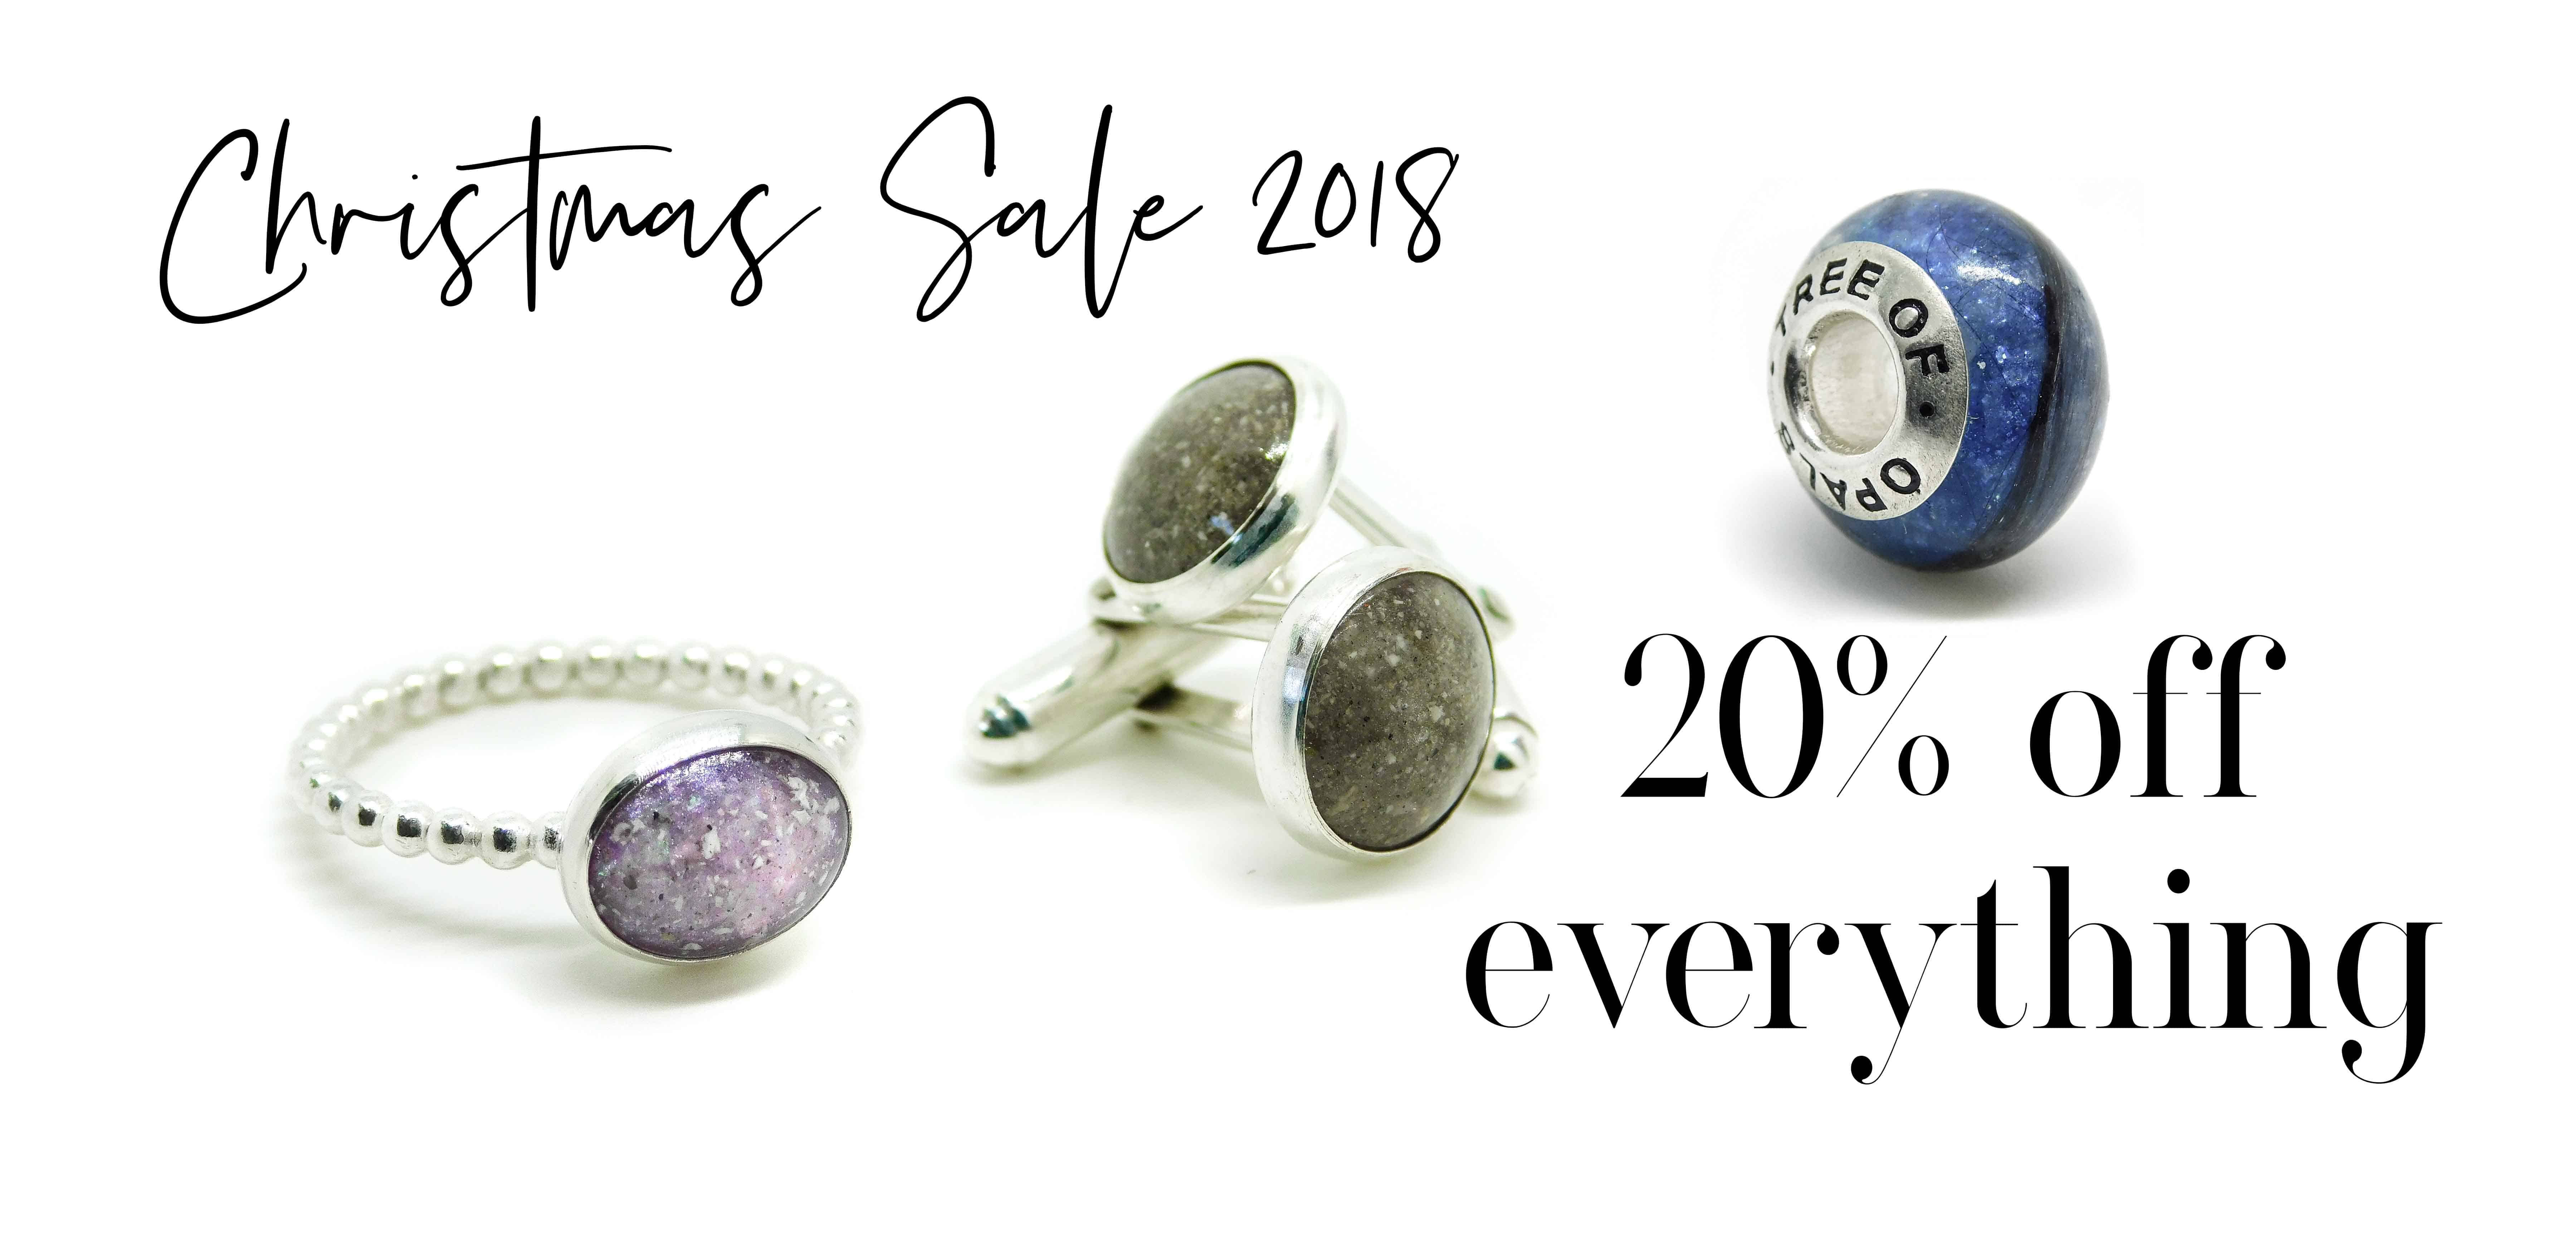 Christmas sale 2018 memorial jewellery